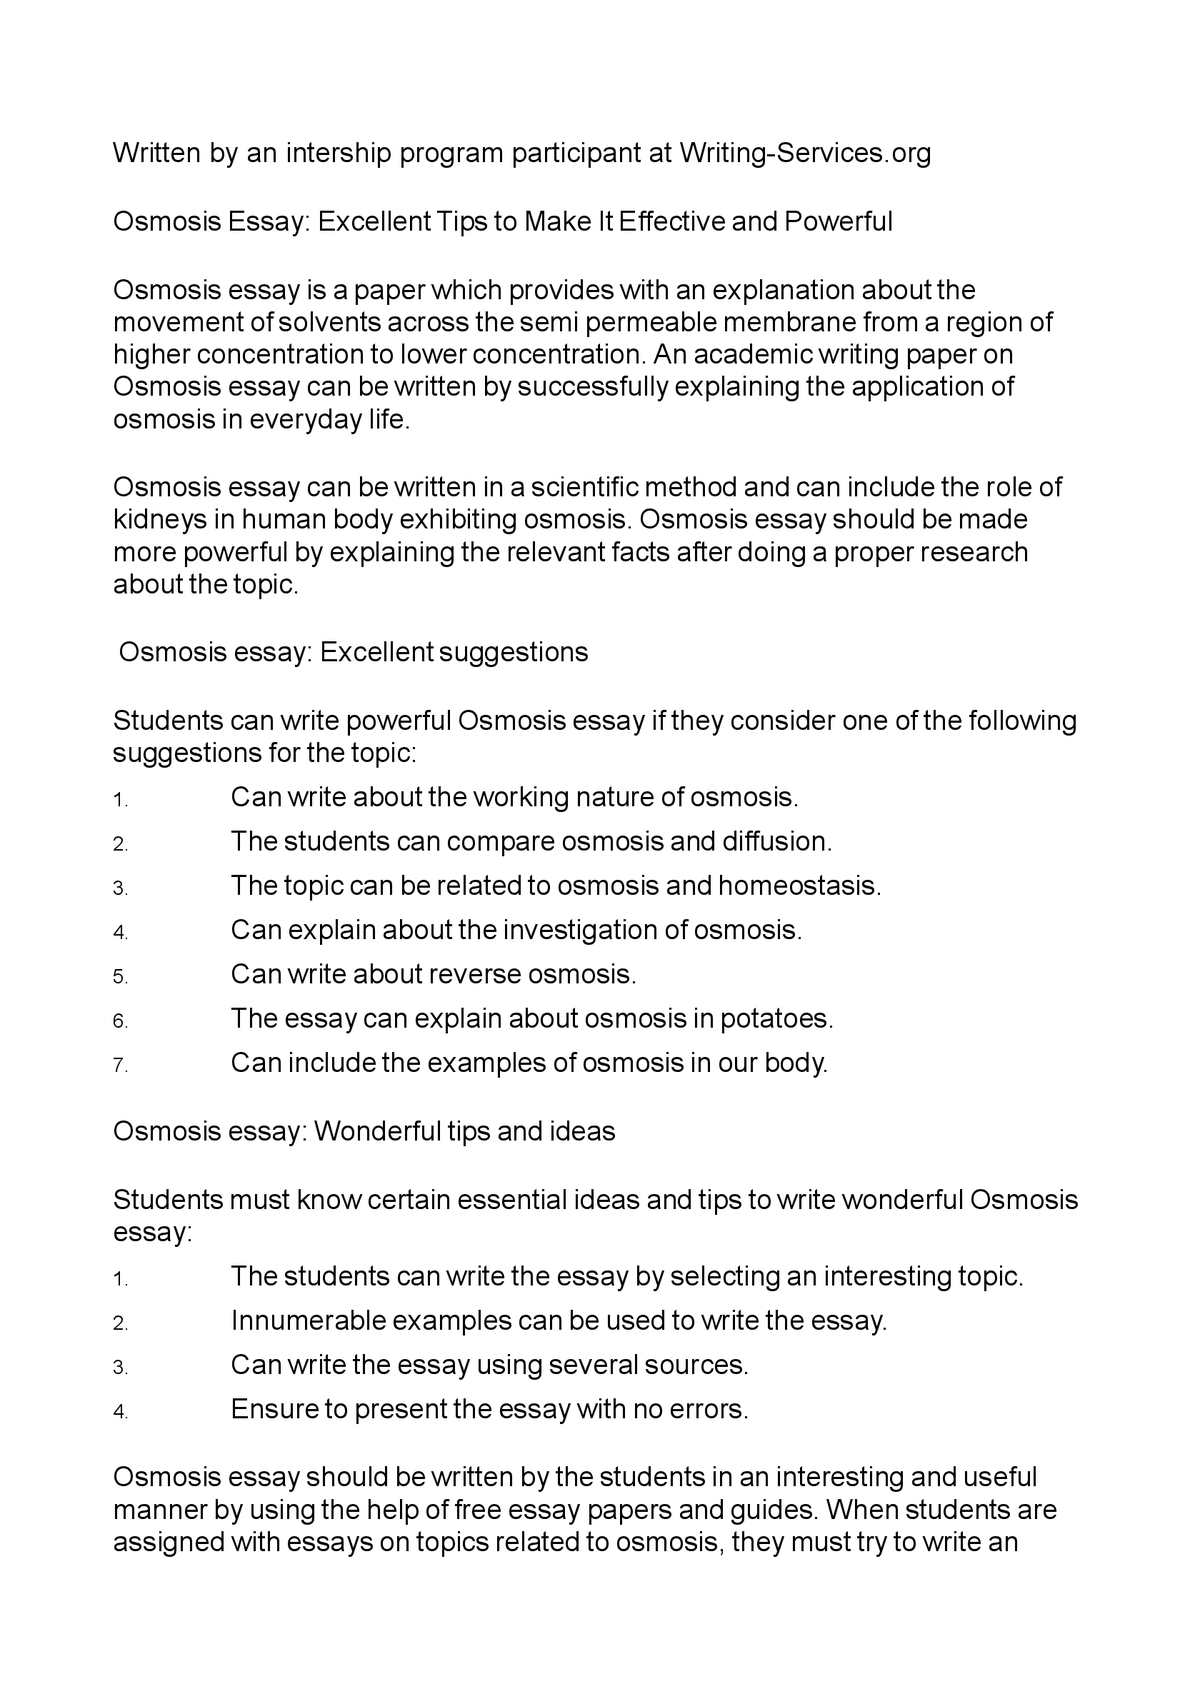 calamo  osmosis essay excellent tips to make it effective and  osmosis essay excellent tips to make it effective and powerful